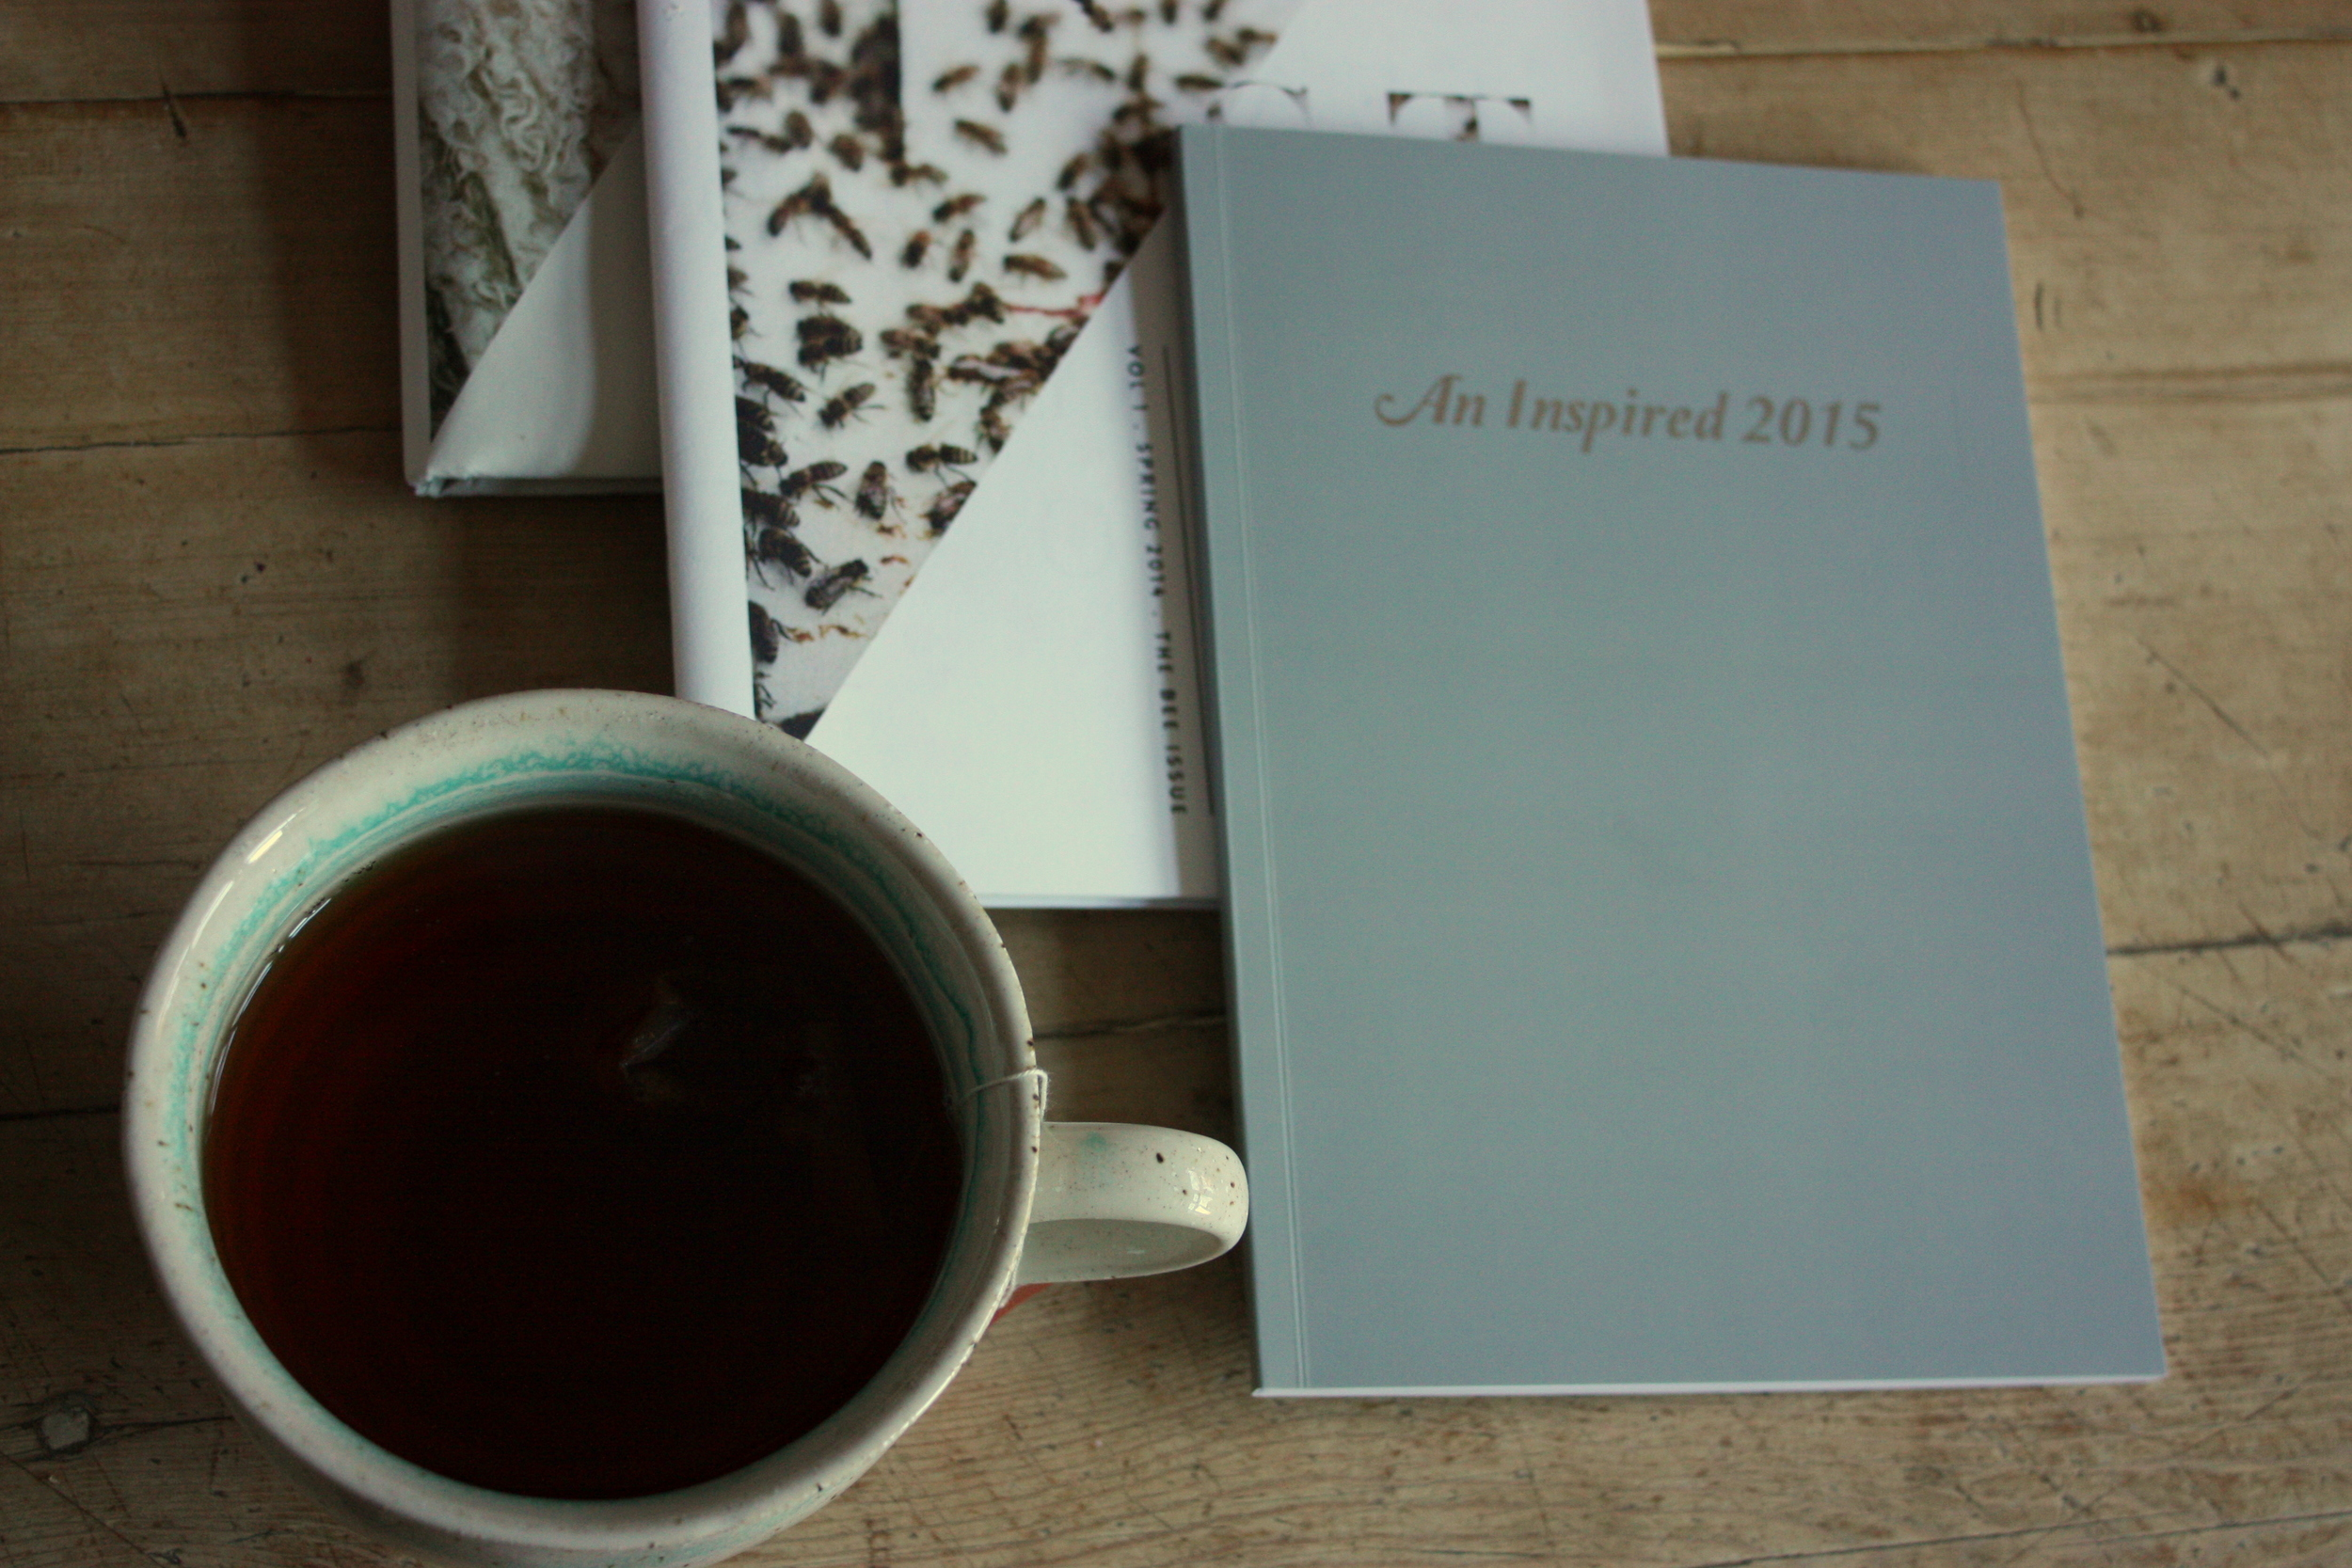 Hart and Honey magazines, Rooibos and my journal. Perfect.